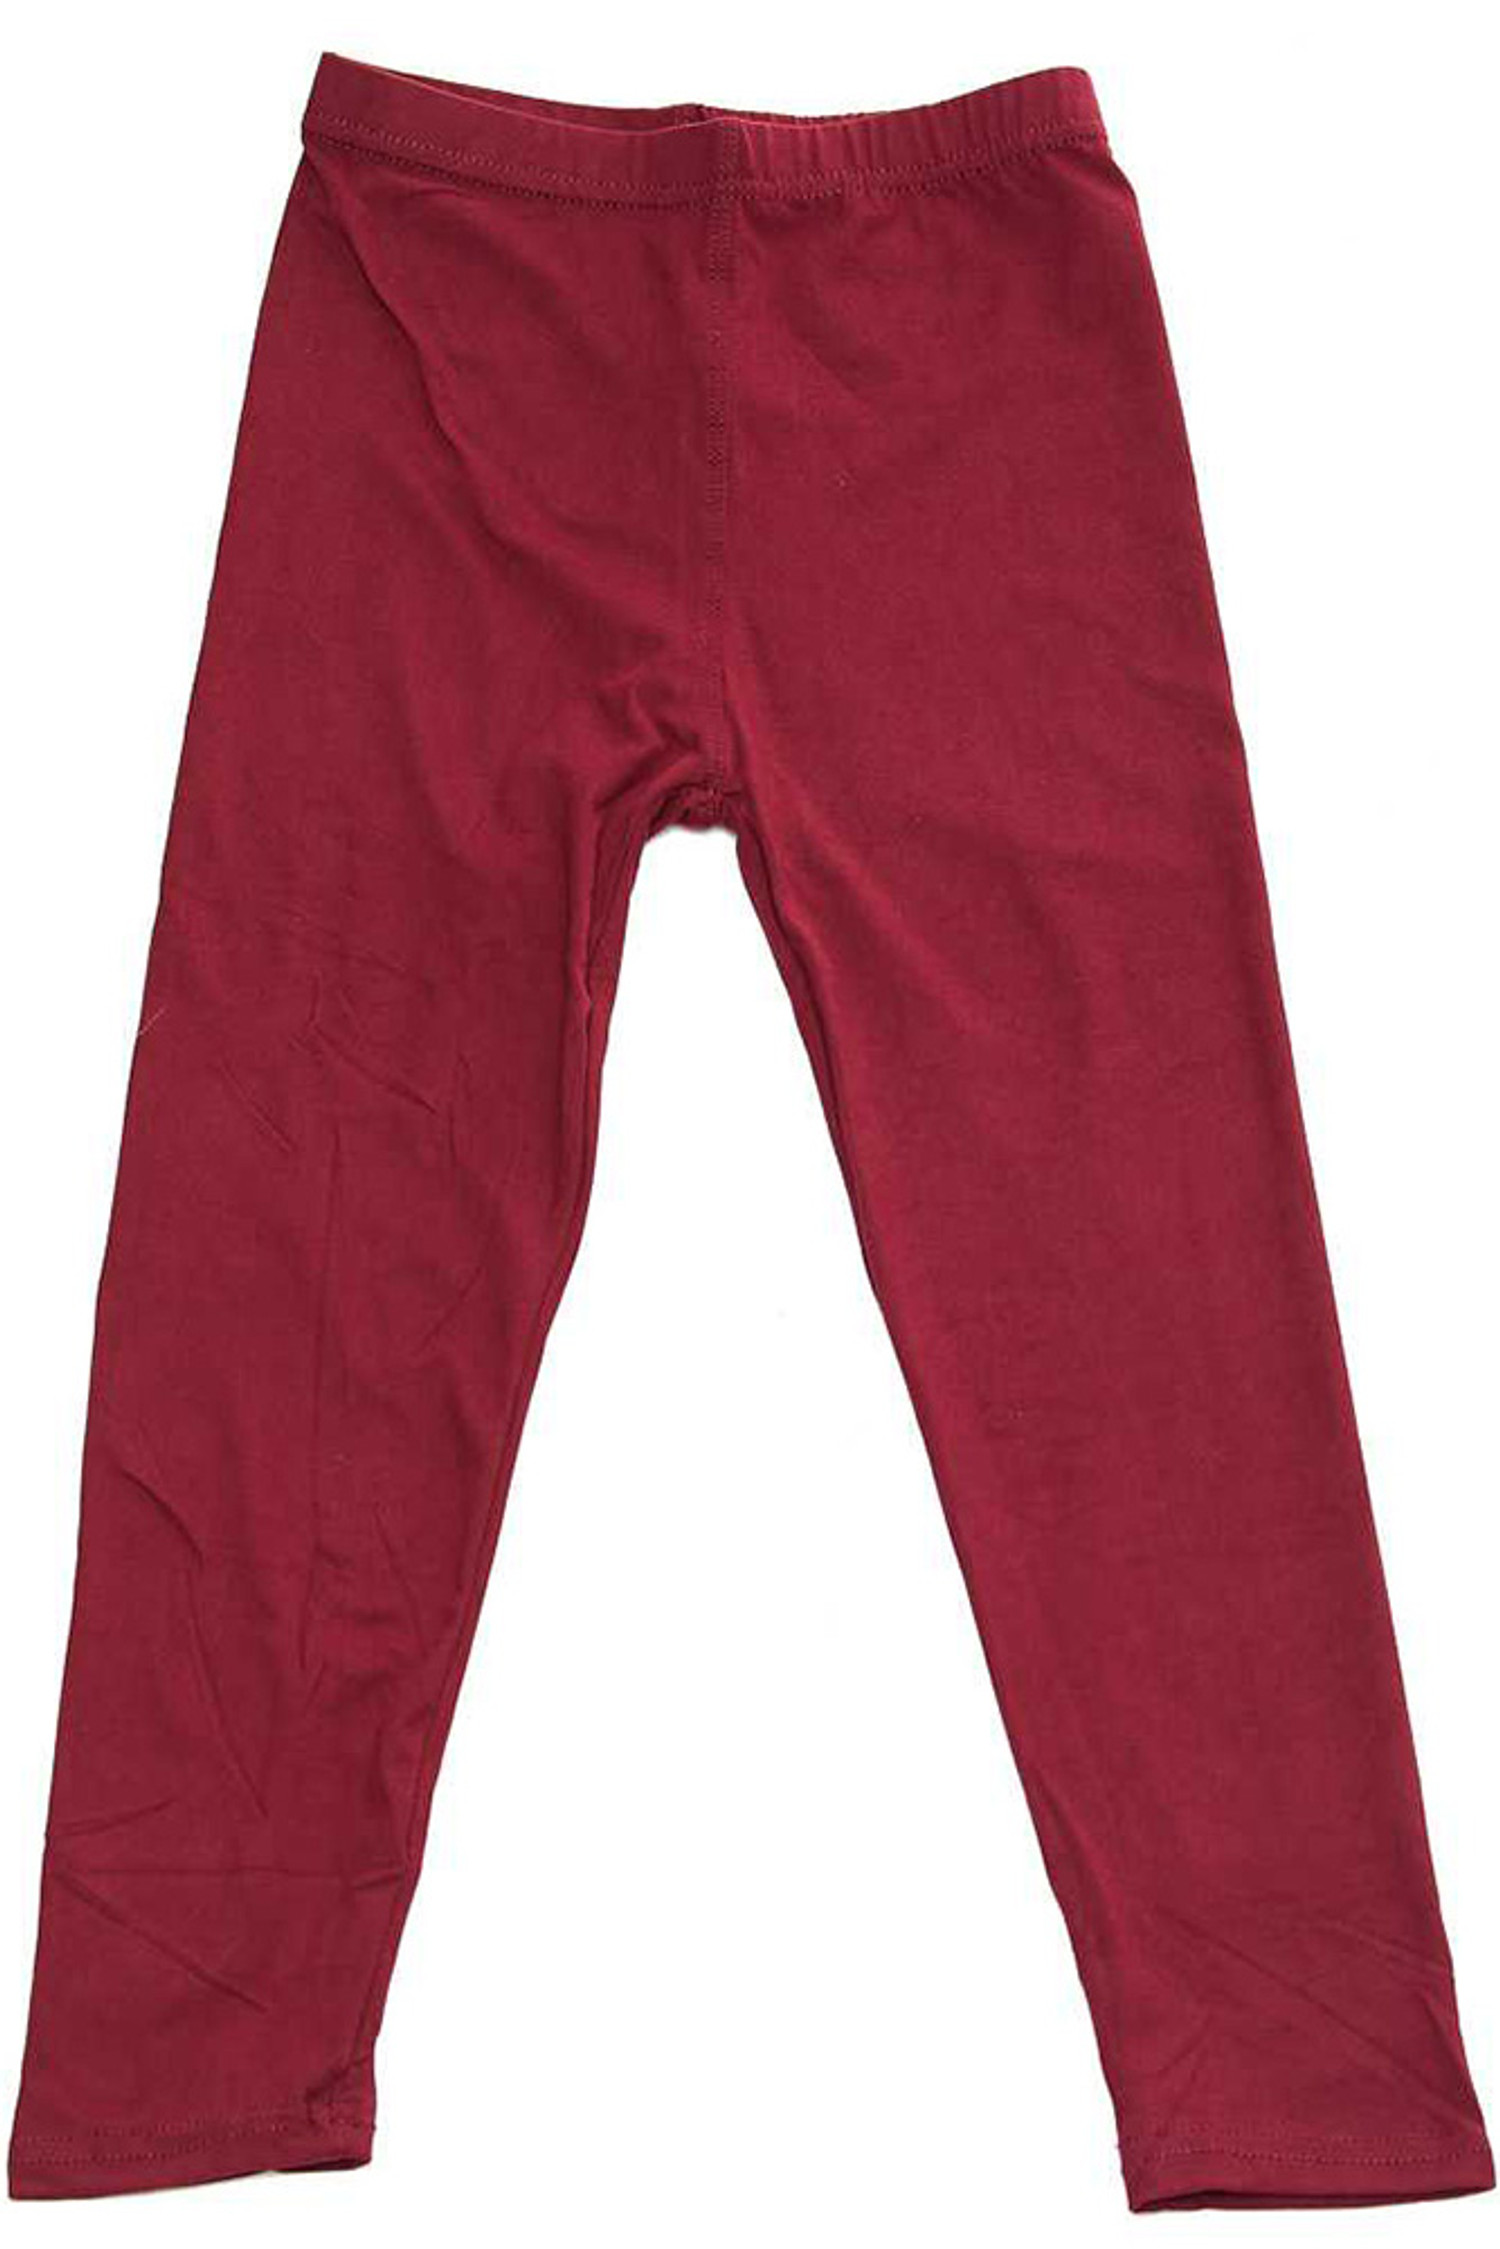 Brushed Solid Basic Kids Leggings